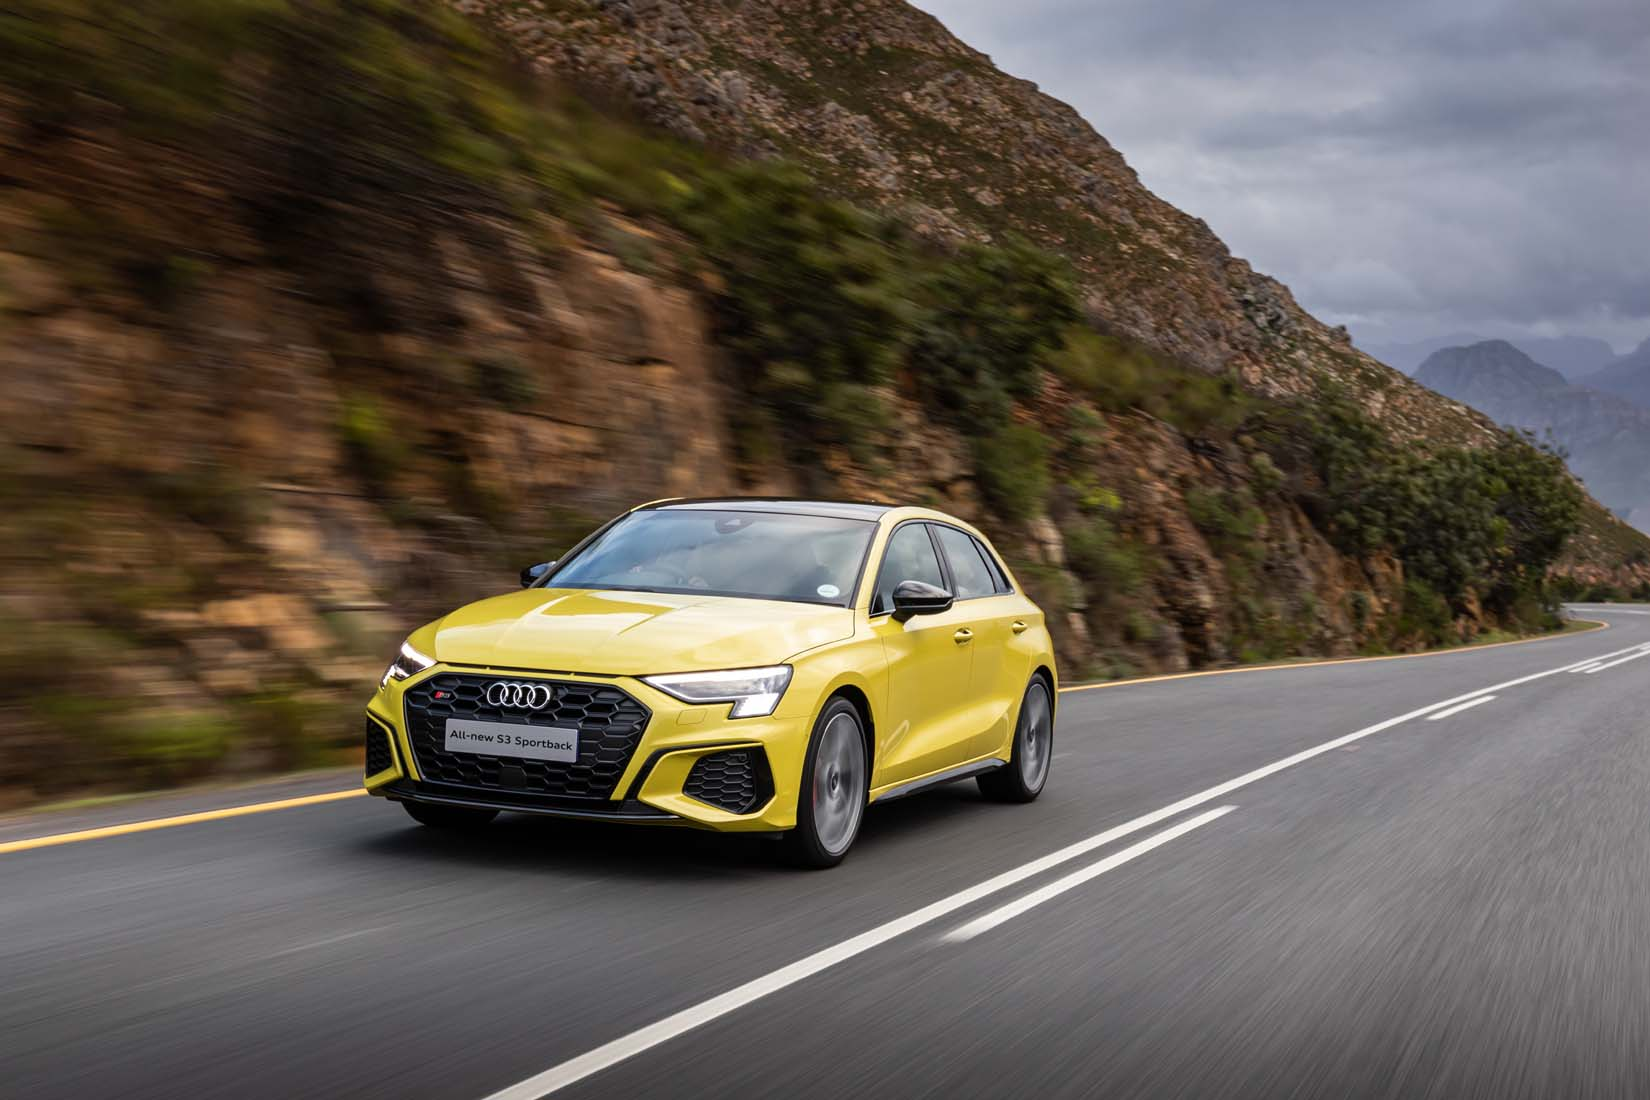 The new Audi A3 is here. Well, almost